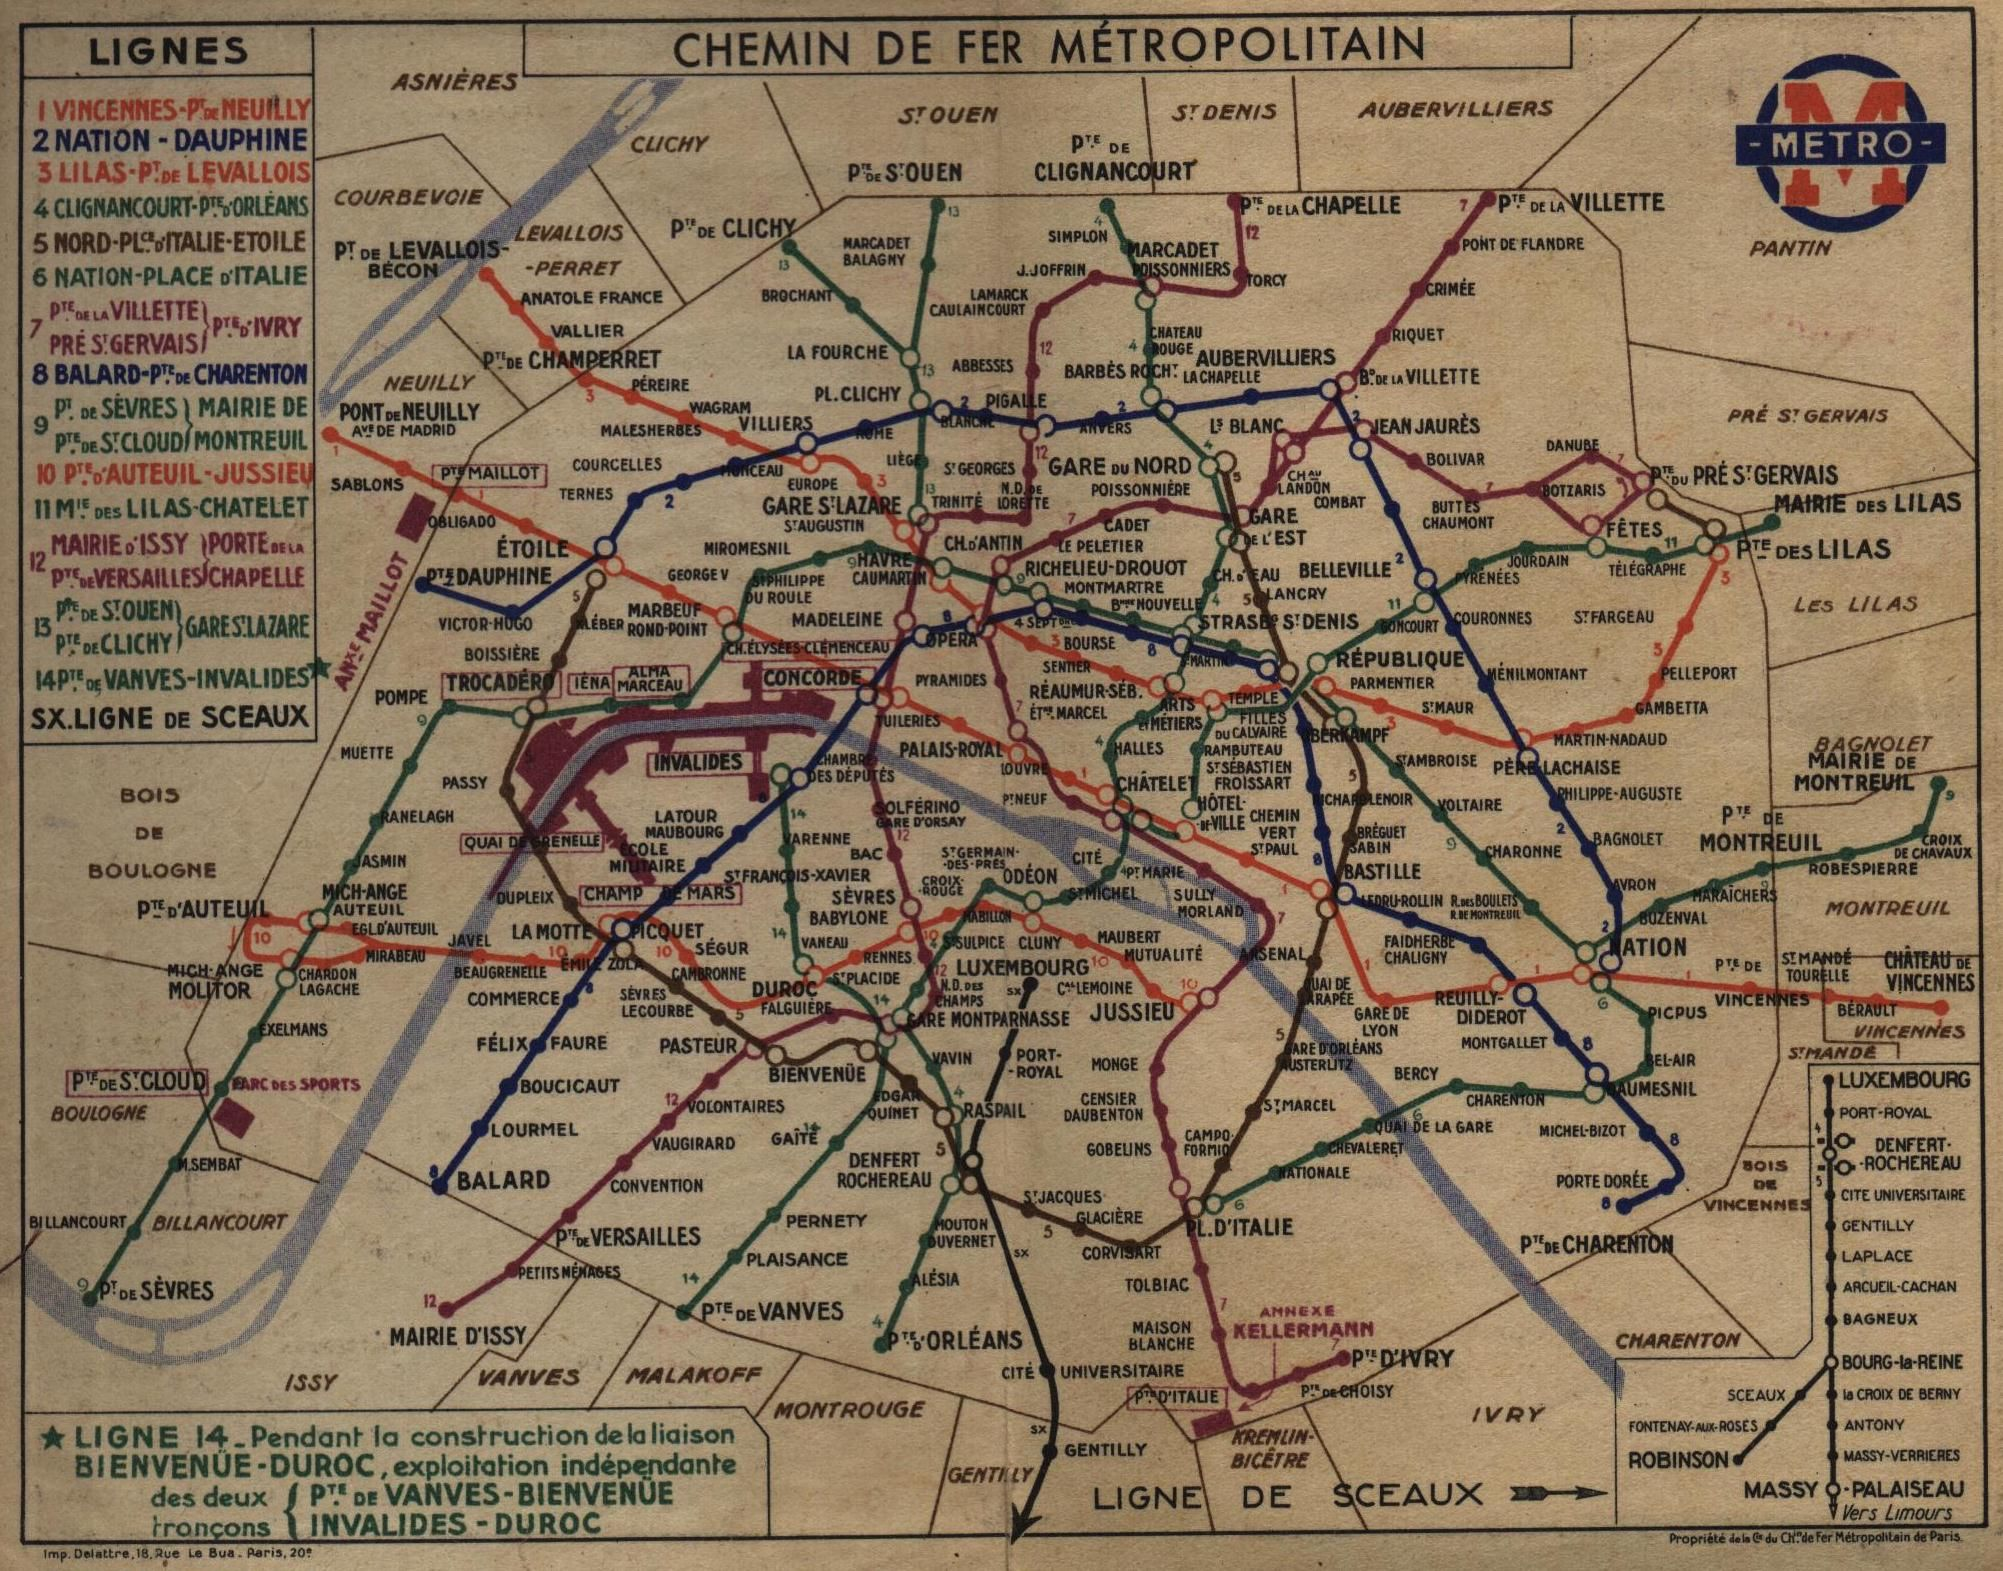 Pin By Marité Caillon On Iillustrations Et Affiches Pinterest - French metro map